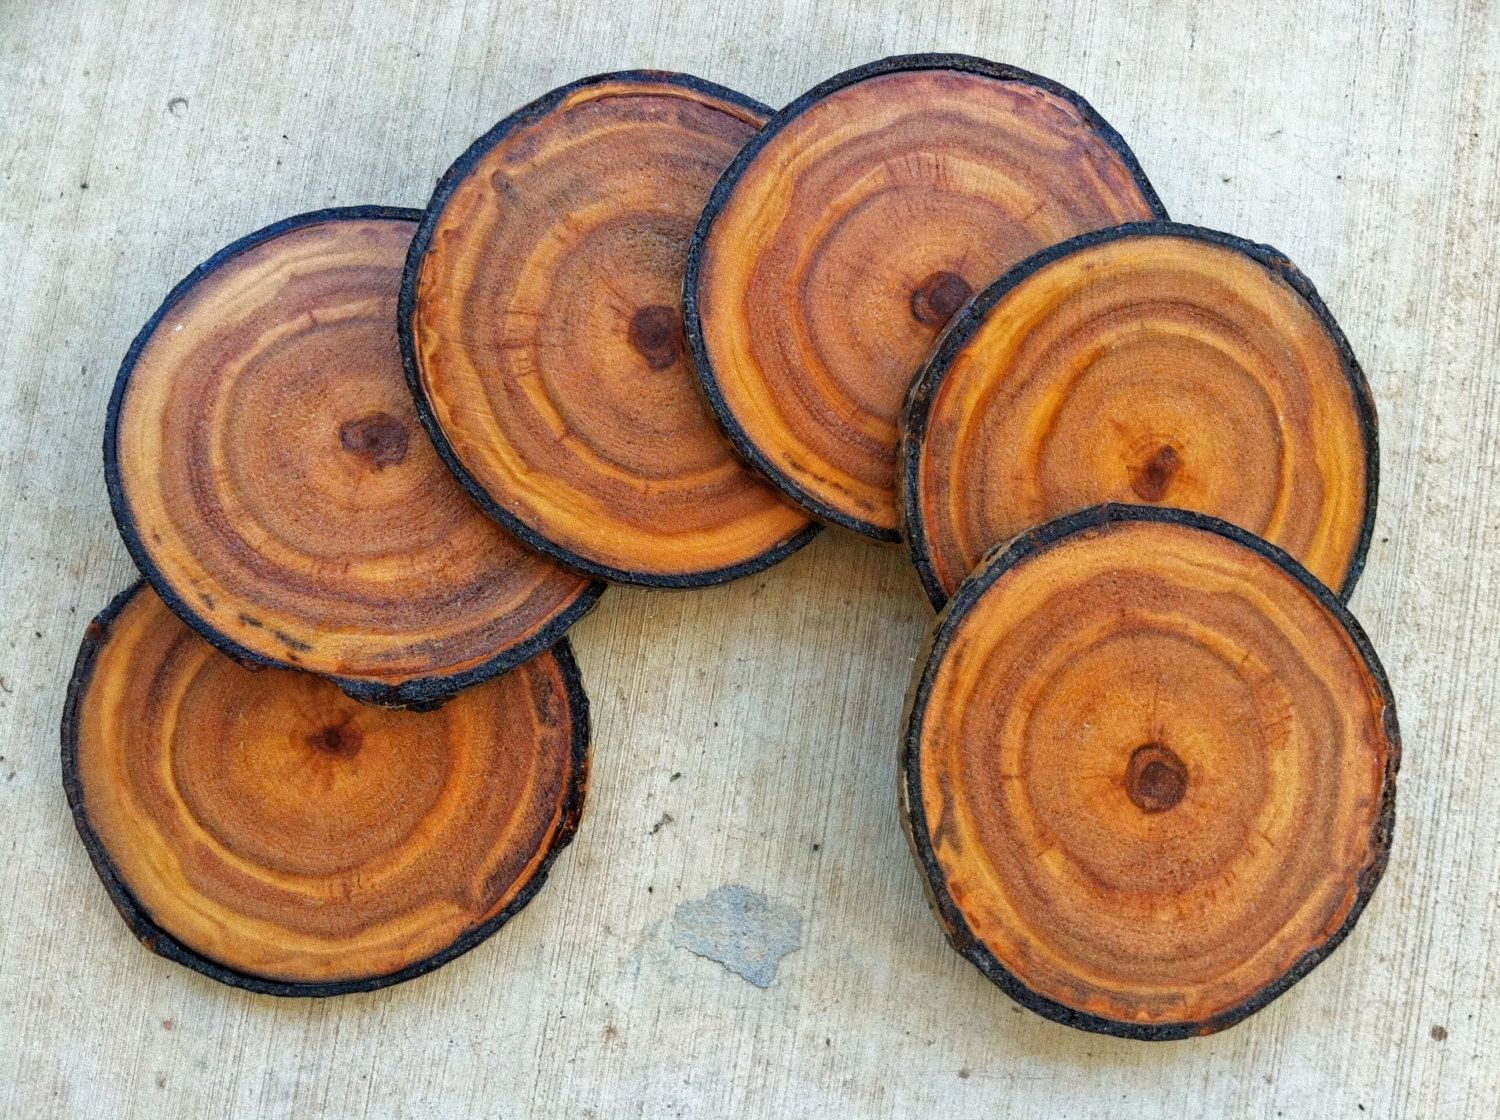 Asian Inspired Bedroom Furniture Handmade Coasters Colorado Aspen Wood Coaster Set Of 6 By